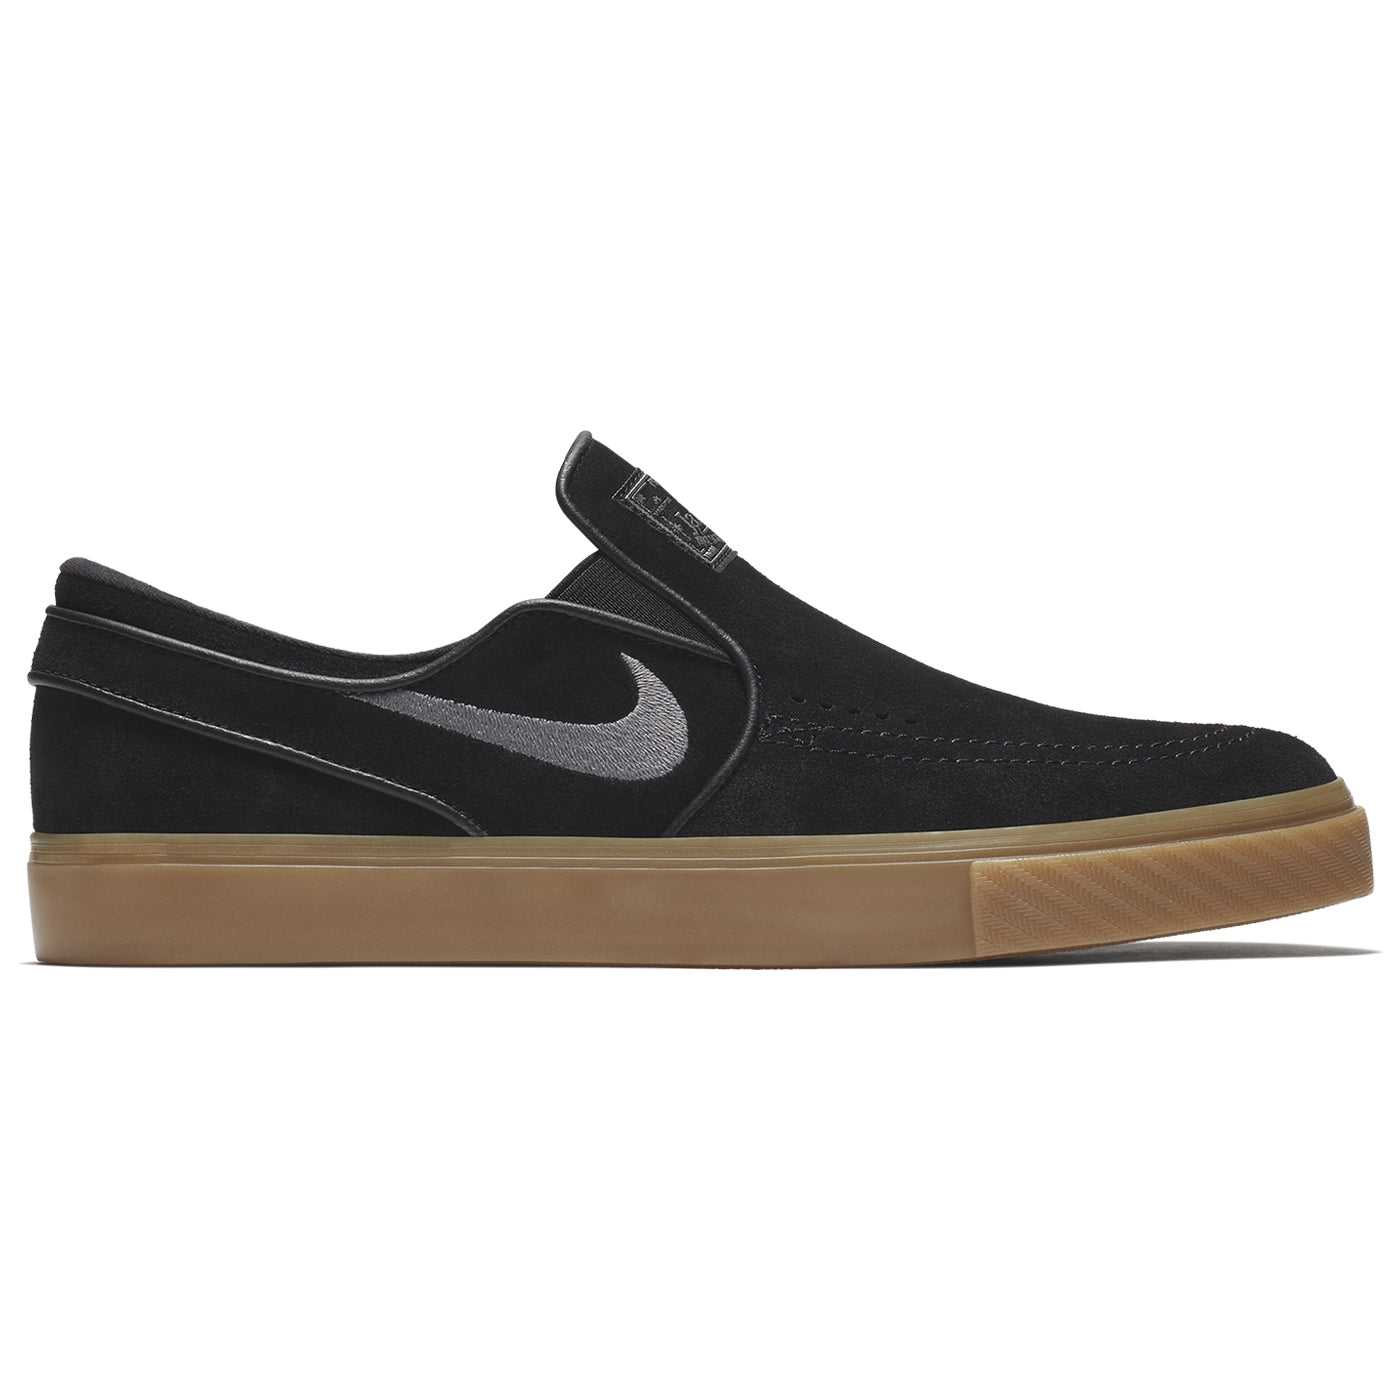 ab0a8e8c61ad Nike SB Zoom Stefan Janoski Slip Shoes - Black   Gunsmoke - Gum Light Brown